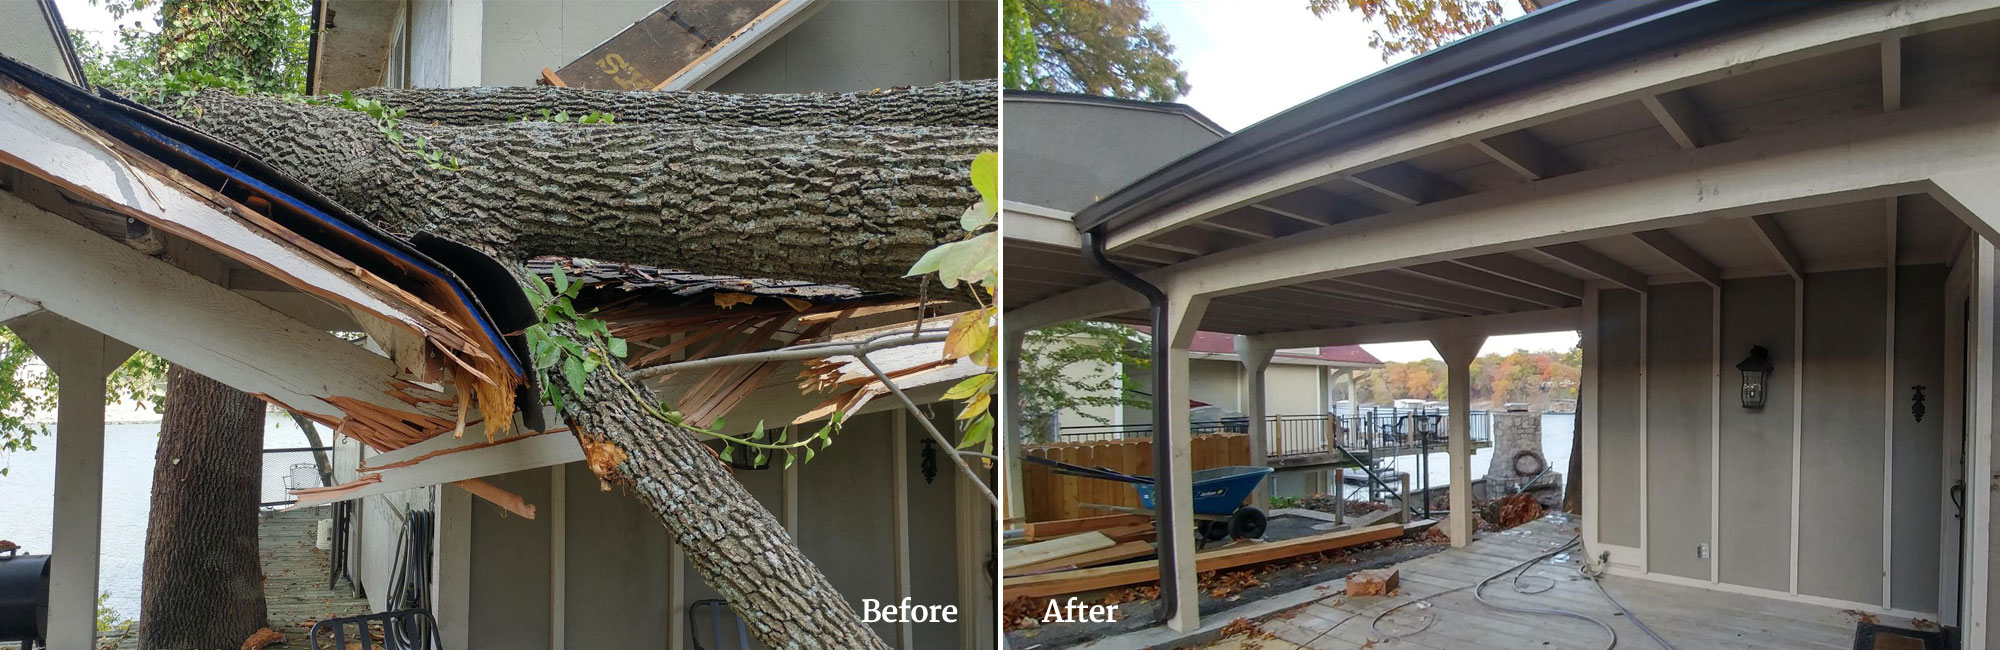 Before and After Our Roofing Services in Tulsa, OK